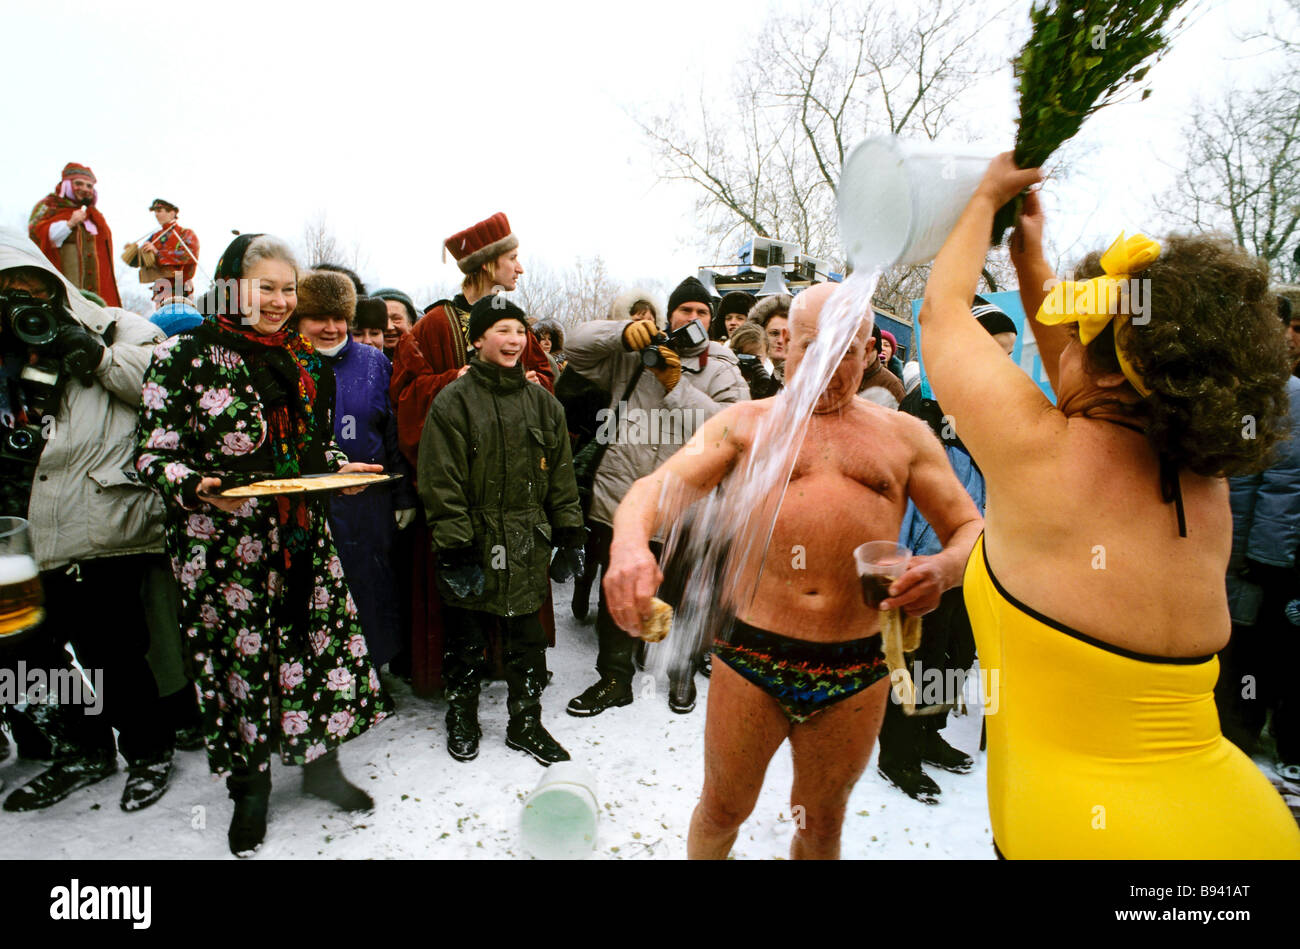 People having a cold shower during Mardi Gras festivities in Kolomenskoye Moscow - Stock Image